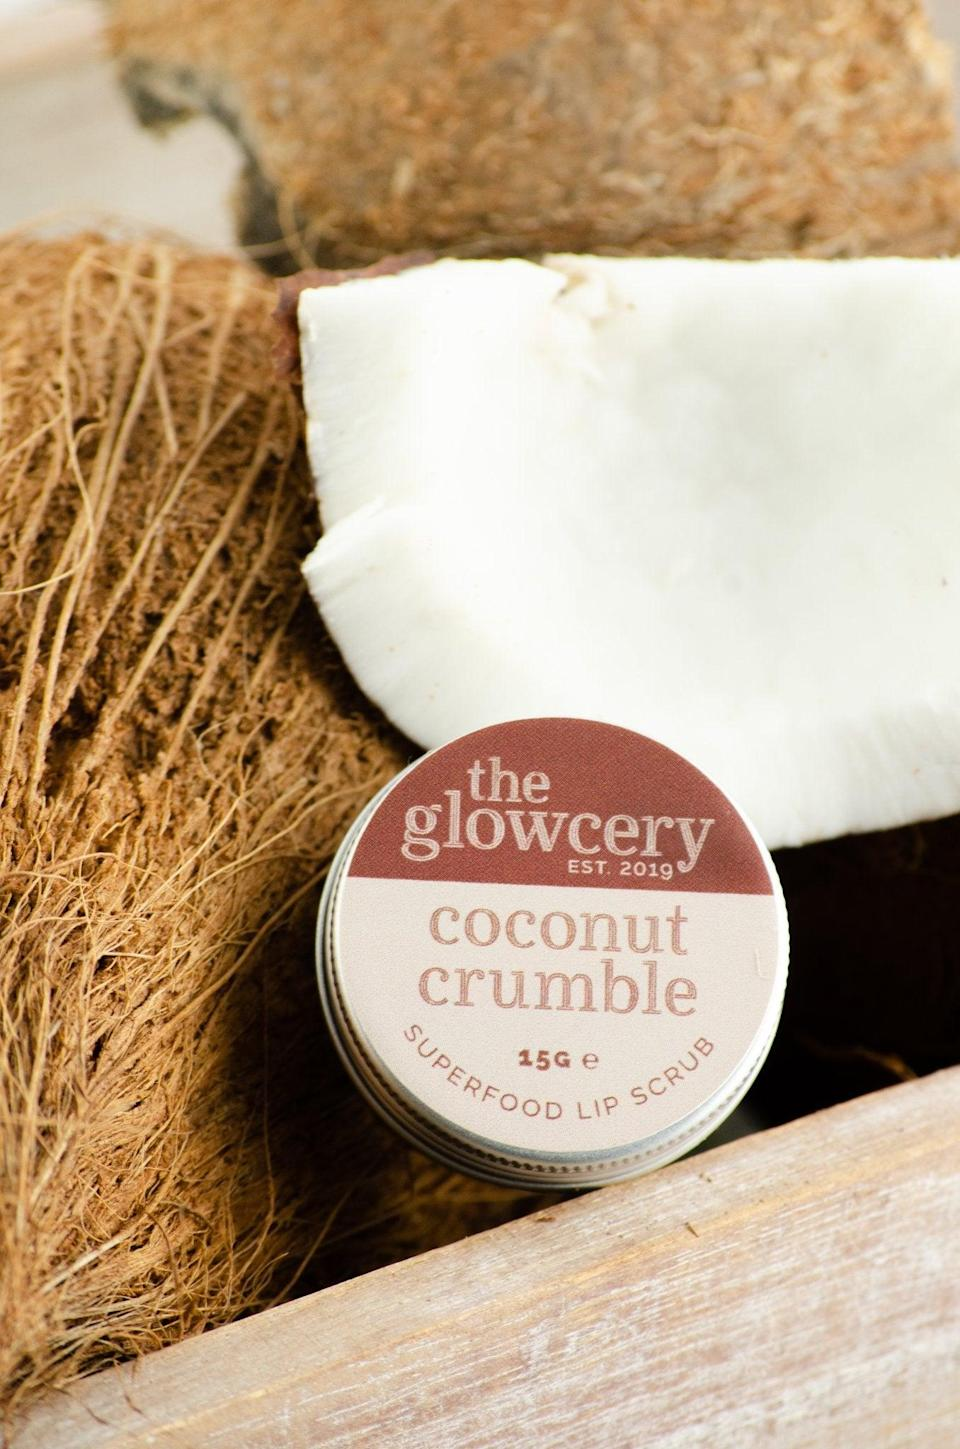 """<h2>The Glowcery Coconut Crumble Superfood Natural Lip Scrub</h2><br><br>Raw coconut oil, sugar, and vegan fruit wax are the secret ingredients in this Coconut Crumble canister, which is like dessert for dry lips. <br><br><br><strong>The Glowcery</strong> Coconut Crumble - Superfood Natural Lip Scrub, $, available at <a href=""""https://go.skimresources.com/?id=30283X879131&url=https%3A%2F%2Fwww.theglowceryshop.com%2Fproducts%2Fcoconut-crumble-natural-superfood-lip-scrub"""" rel=""""nofollow noopener"""" target=""""_blank"""" data-ylk=""""slk:The Glowcery"""" class=""""link rapid-noclick-resp"""">The Glowcery</a>"""